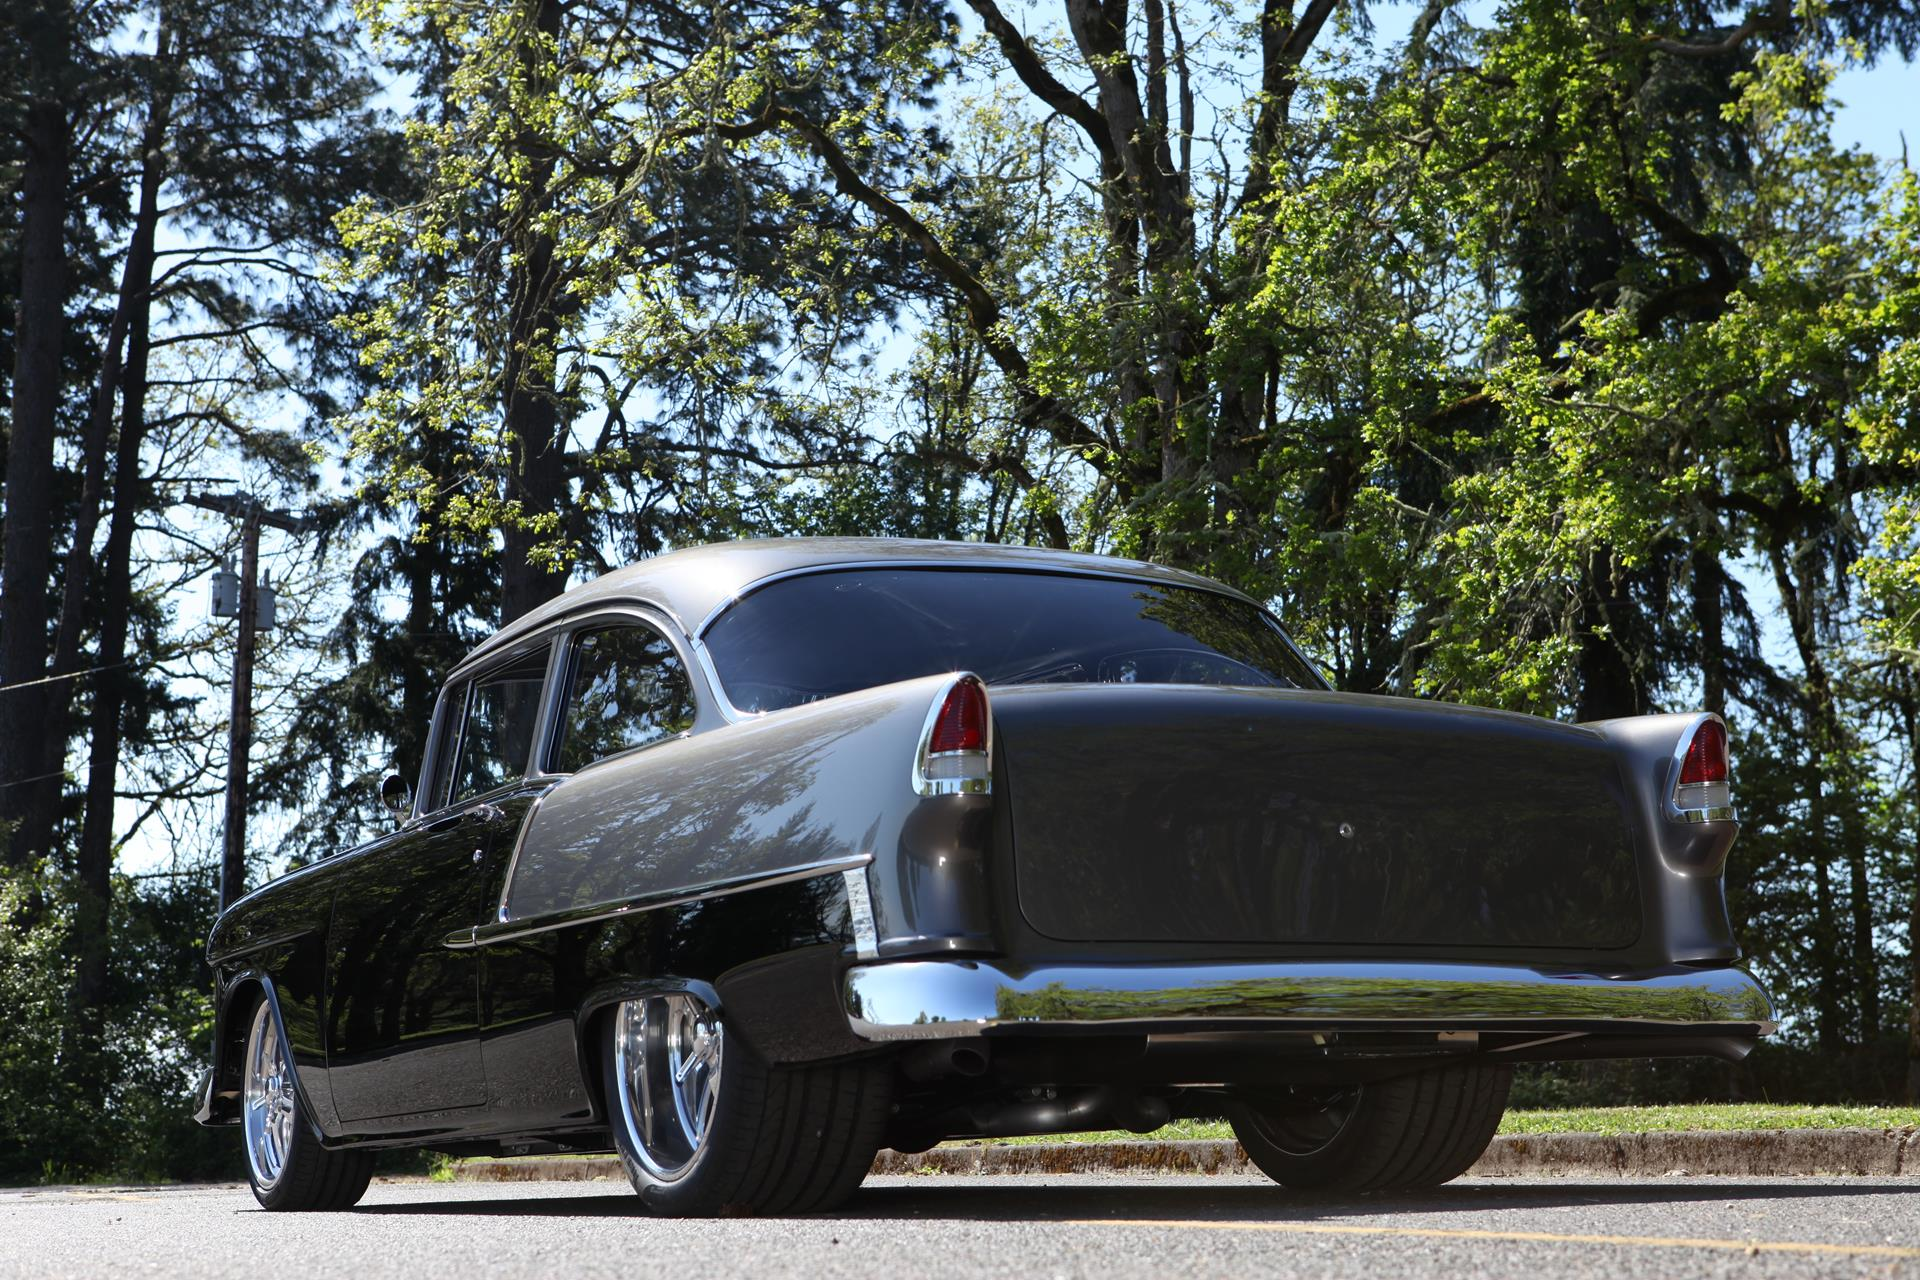 A Metalworks Chevy Protouring